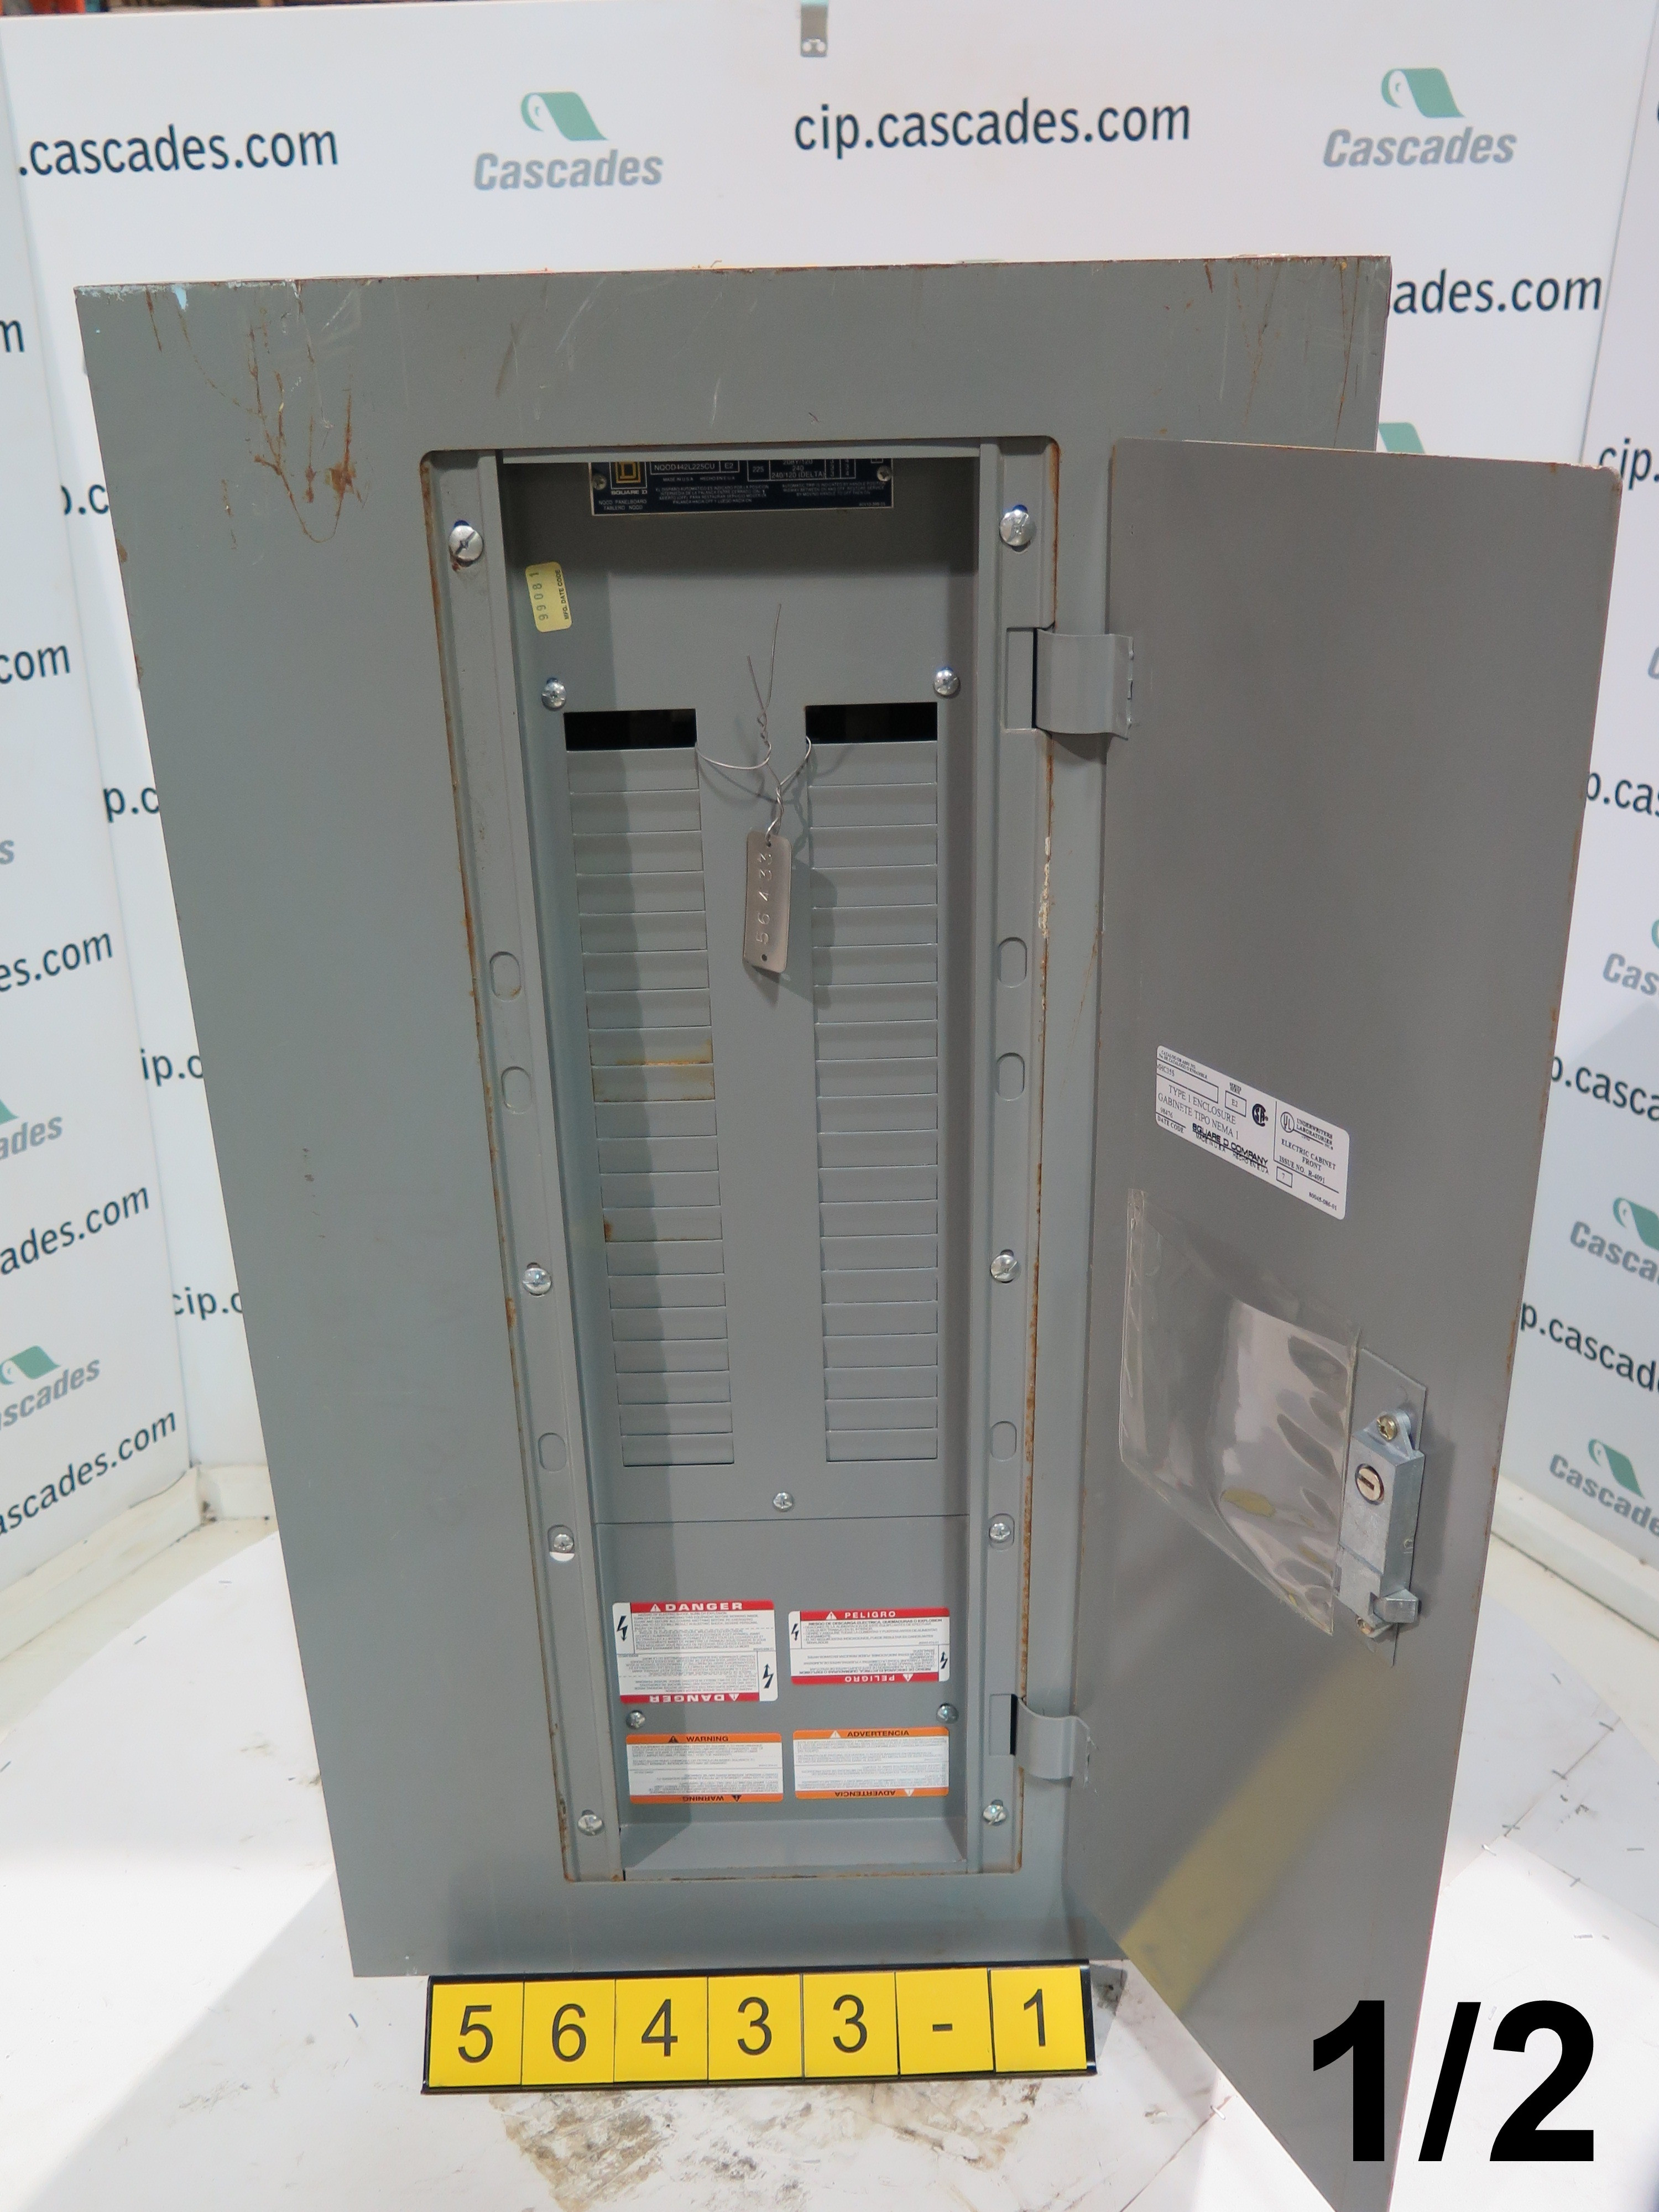 Square D Electrical Breaker Box Need Pix Of Main Wiring Cmain Circuit Br Panel Nqod 442l225cu